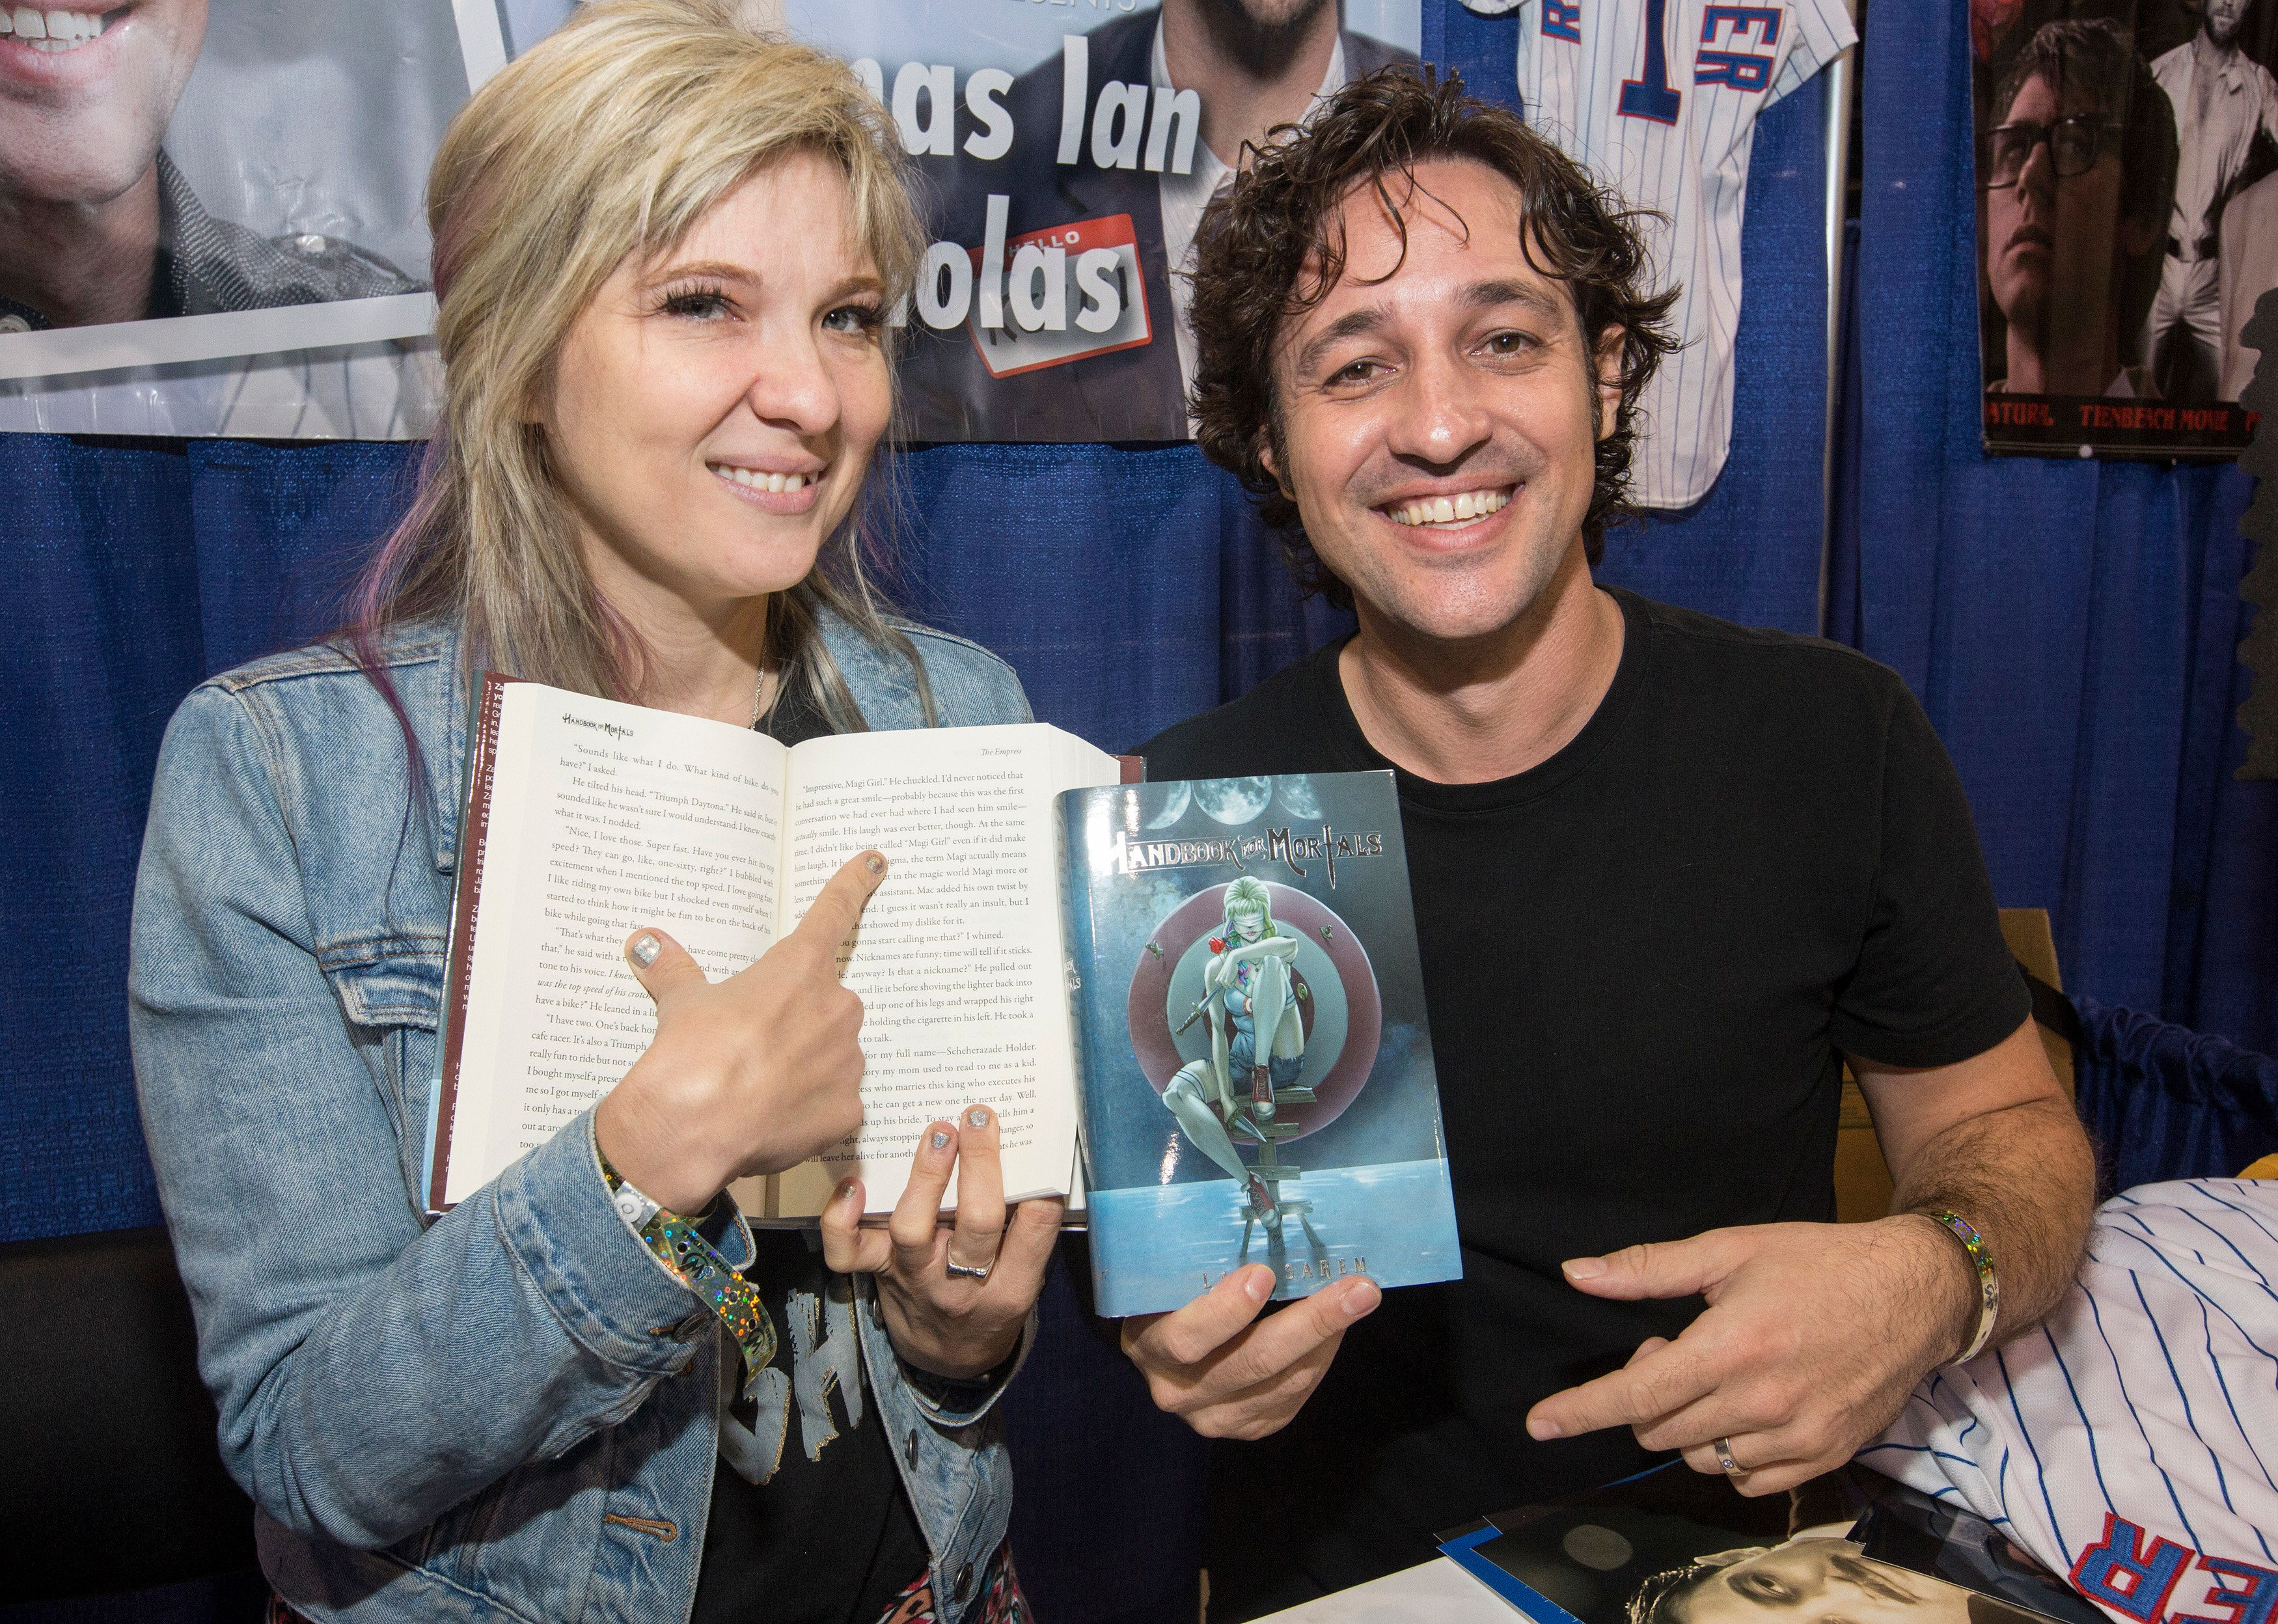 ROSEMONT, IL - AUGUST 25:  Writer Lani Sarem and actor/musician Thomas Ian Nicholas during the Wizard World Chicago Comic-Con at the Donald E. Stephens Convention Center on August 25, 2017 in Rosemont, Illinois.  (Photo by Barry Brecheisen/Getty Images)